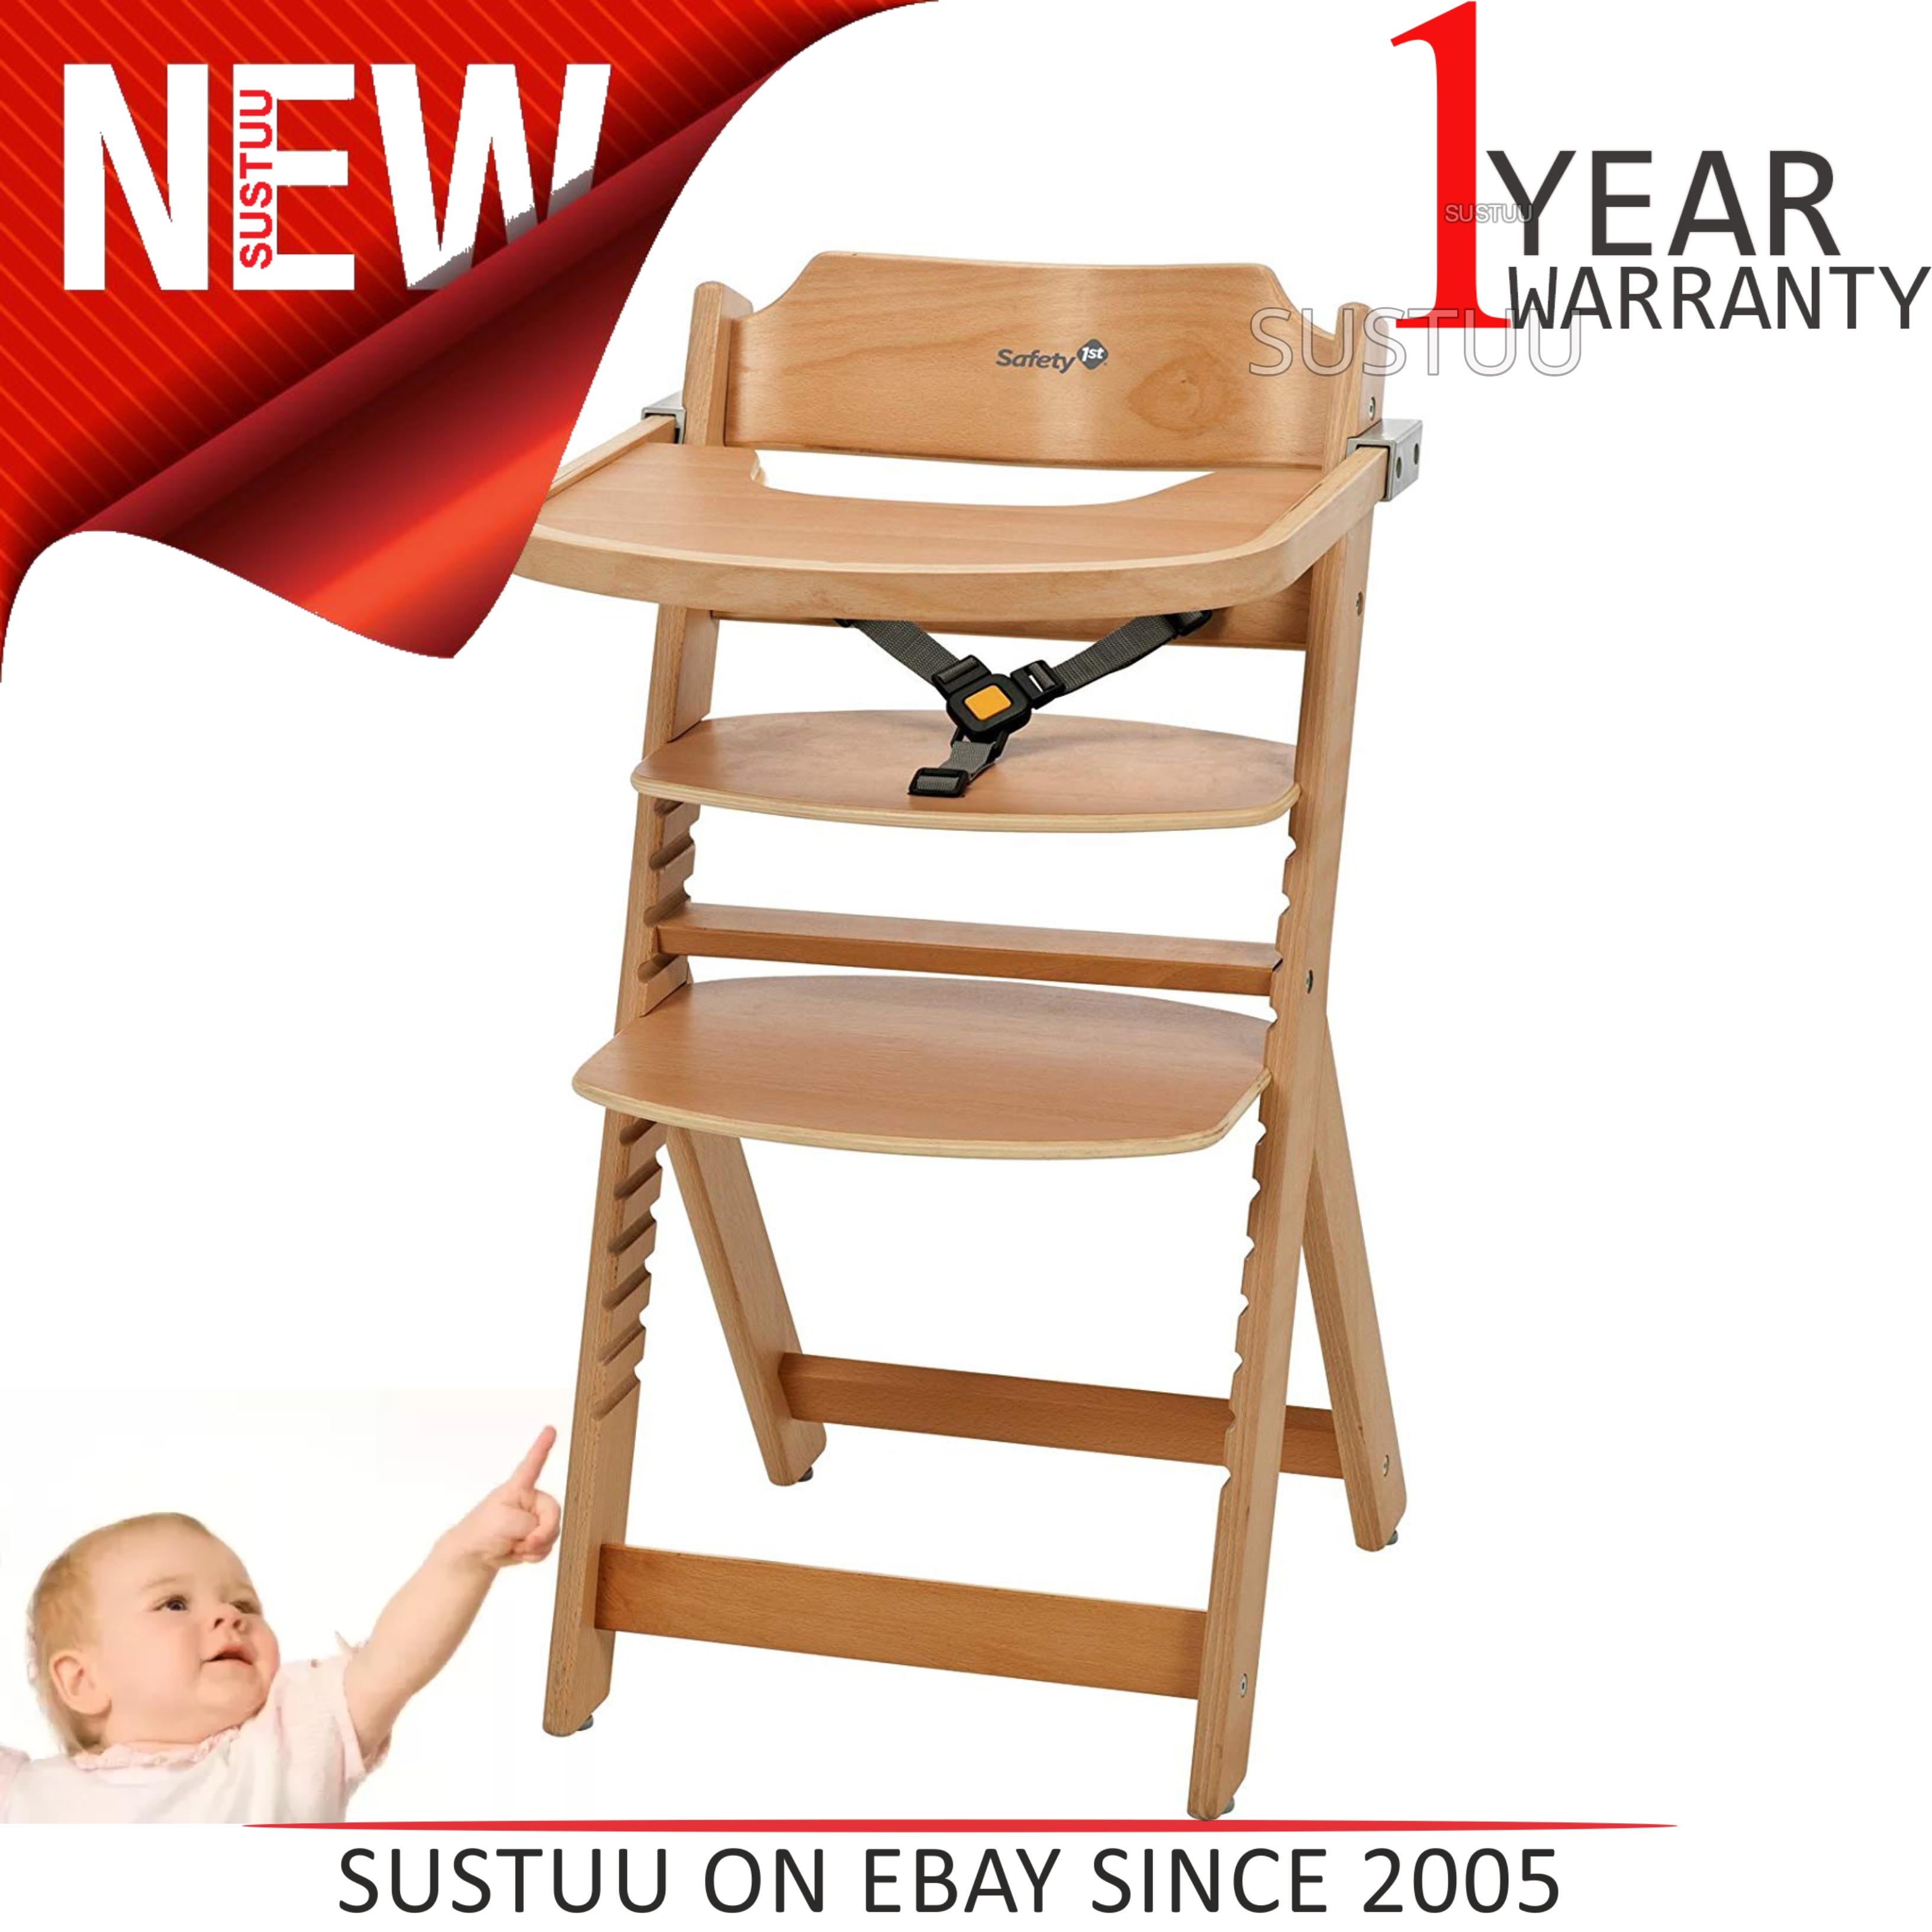 6c58f5e011d3 Details about Safety 1st Timba Wooden Highchair│Toddler/Kid's Mealtime Fun  With Safty Harness